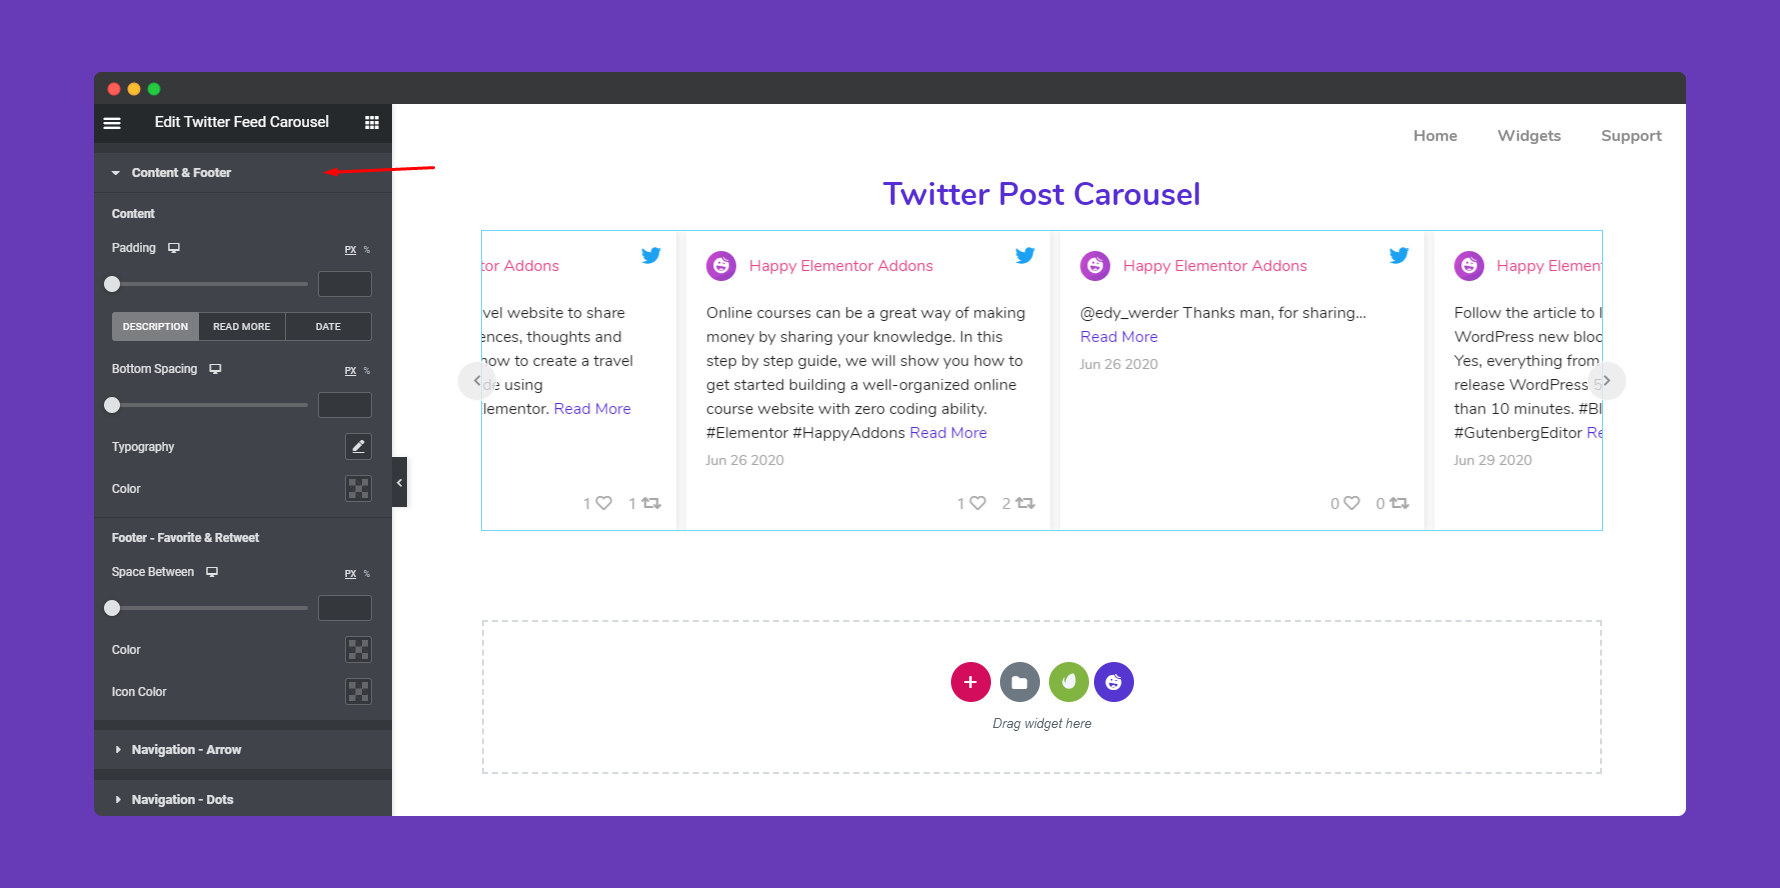 Content & Footer